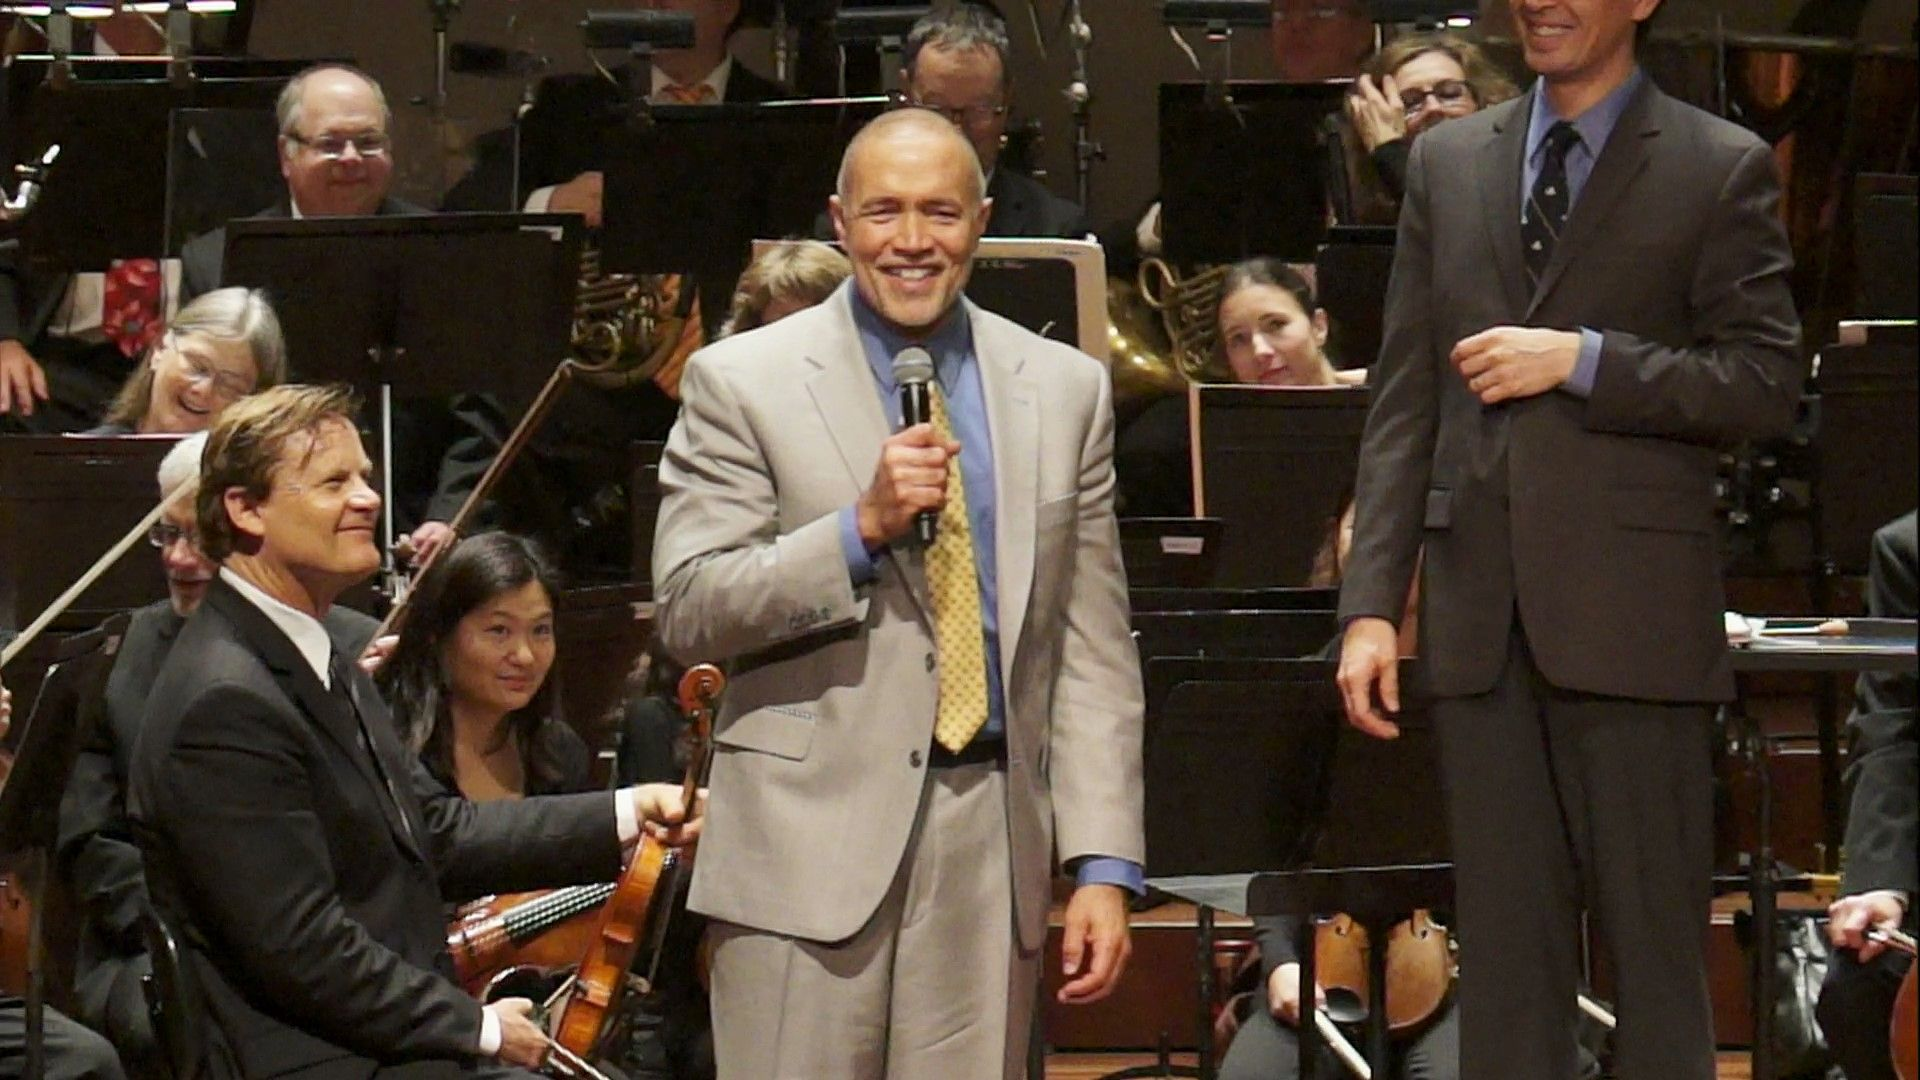 """Composer Michael Abels speaks to the audience about his piece """"Dance for Martin's Dream"""" which was performed at our Everyday Heroes concert in January."""